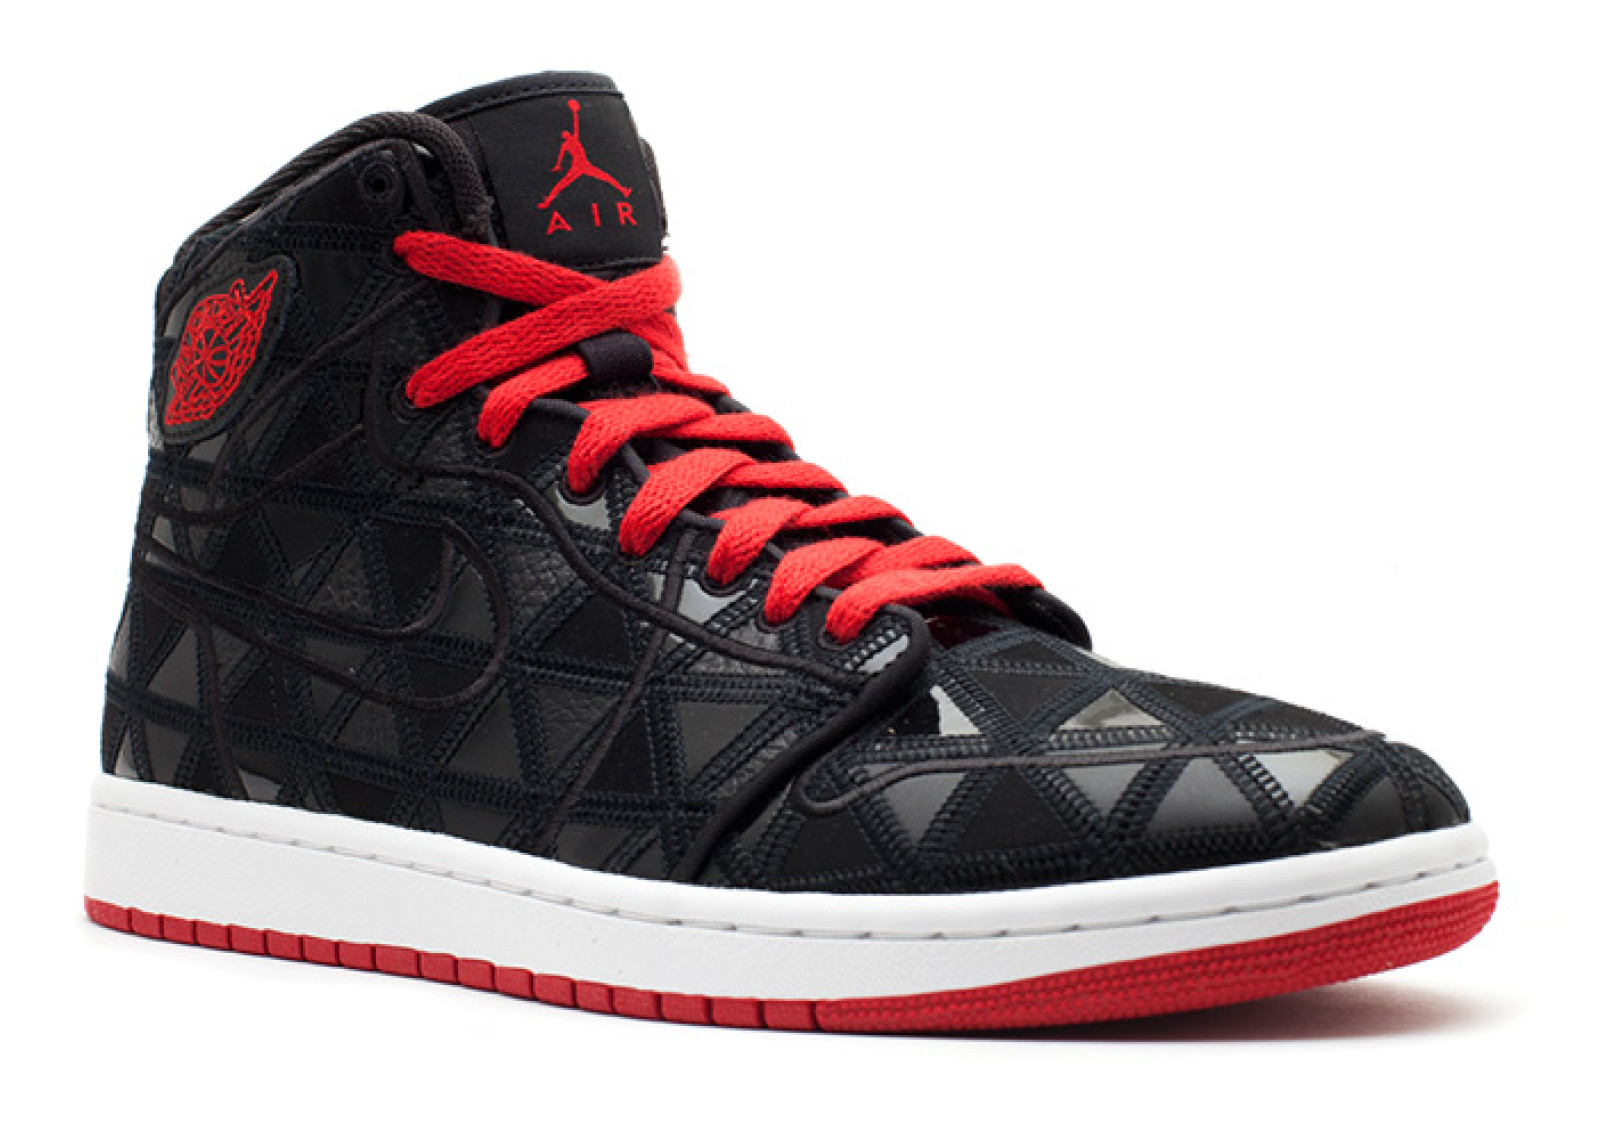 low priced 71458 1f866 ... nike mens aj1 j2k high black varsity red white 401620 002